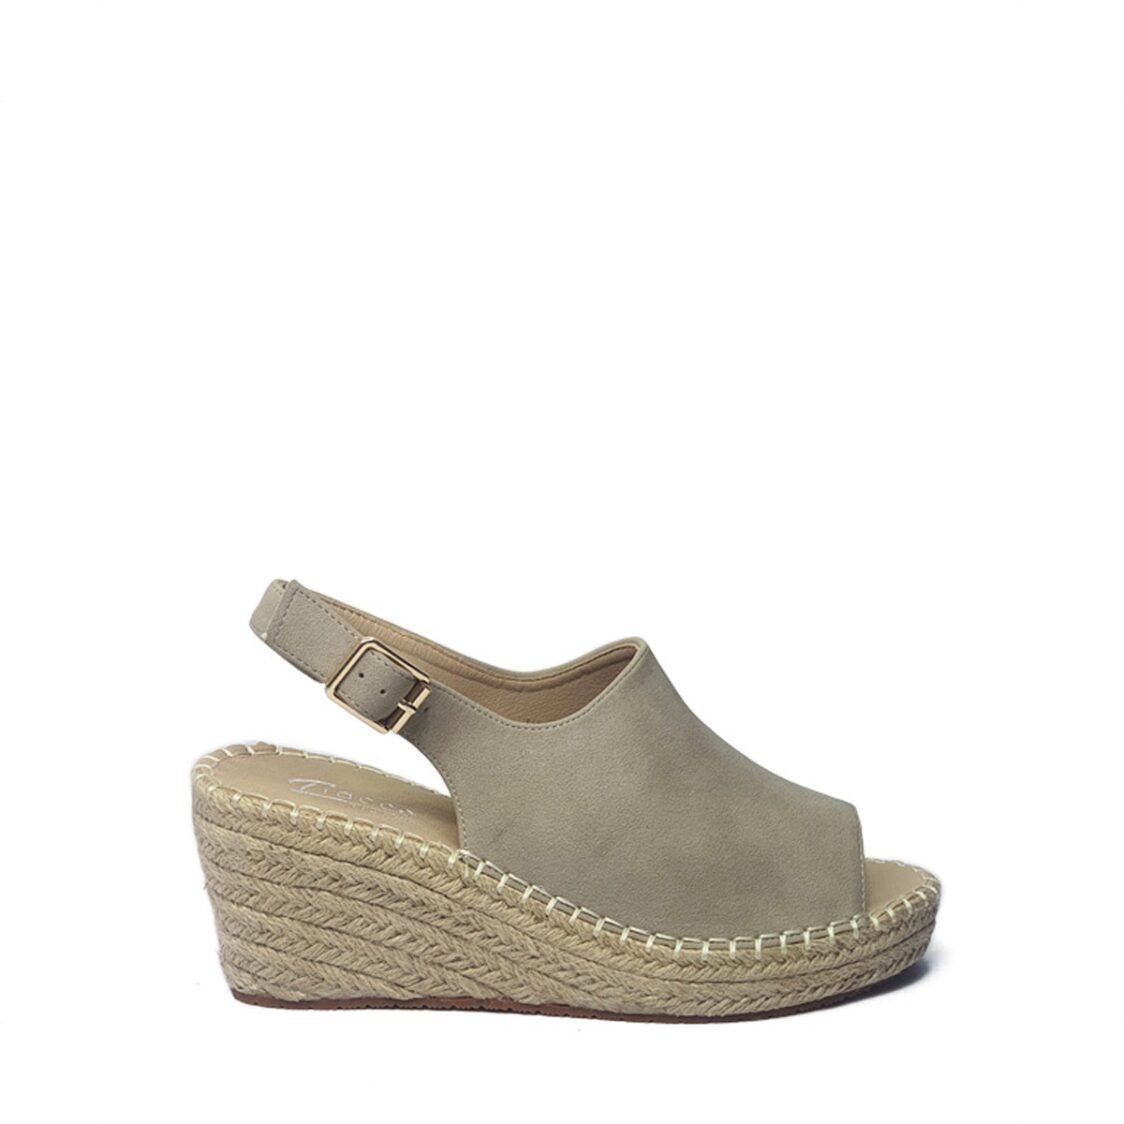 Tracce Comfort Wedge Sandals in Grey AMN5304GY